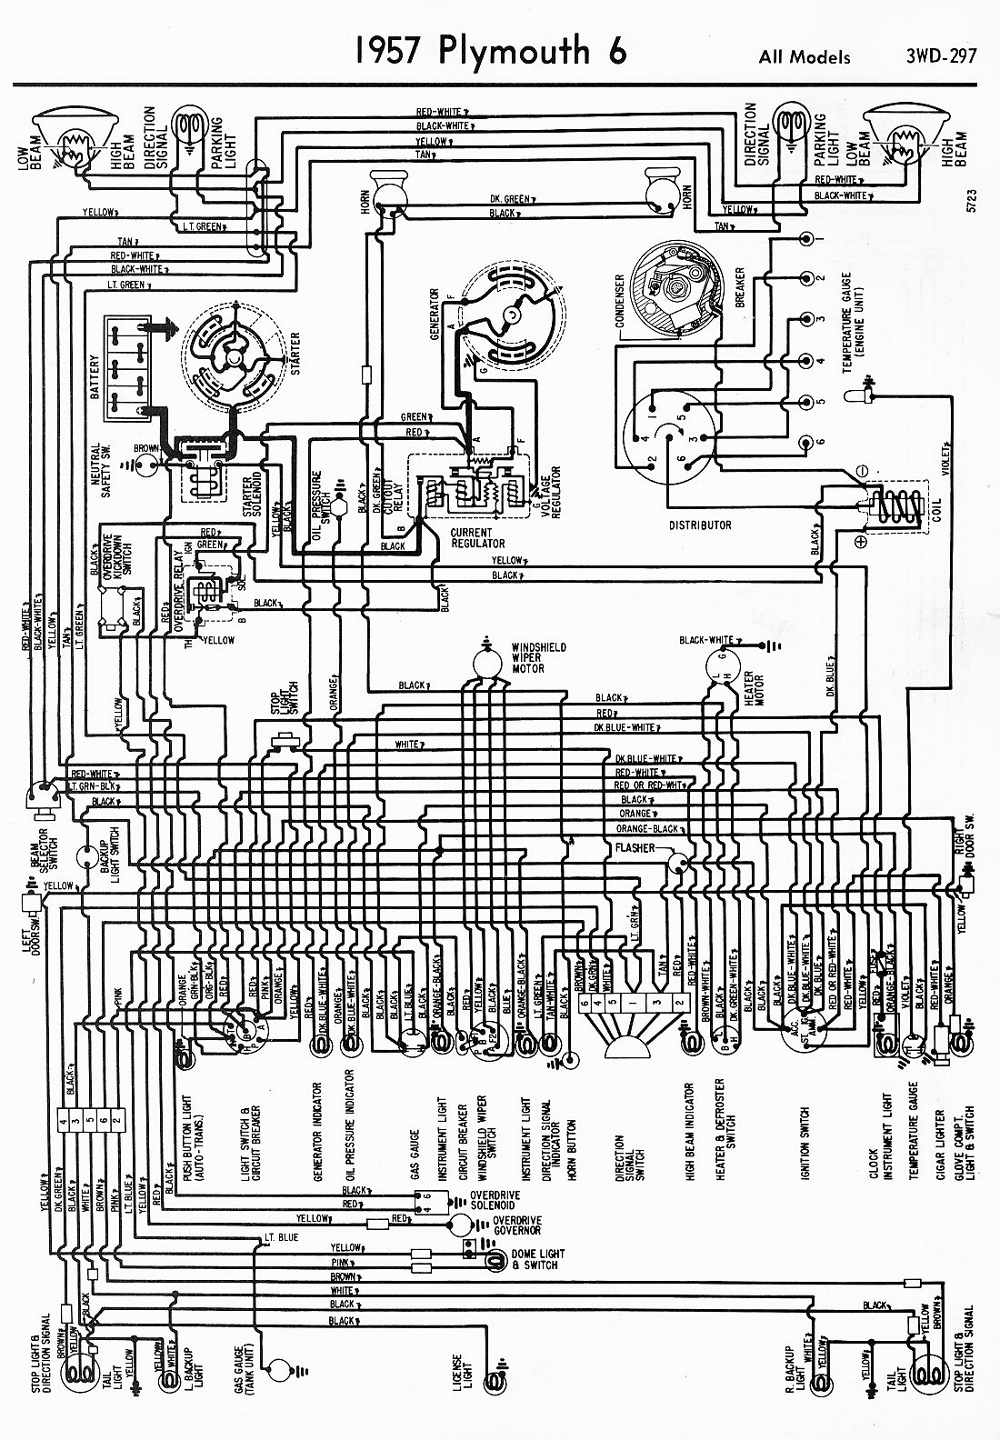 1969 barracuda wiring diagram just another wiring diagram blog u2022 pontiac grand prix wiring diagrams wiring diagram plymouth barracuda [ 1000 x 1440 Pixel ]